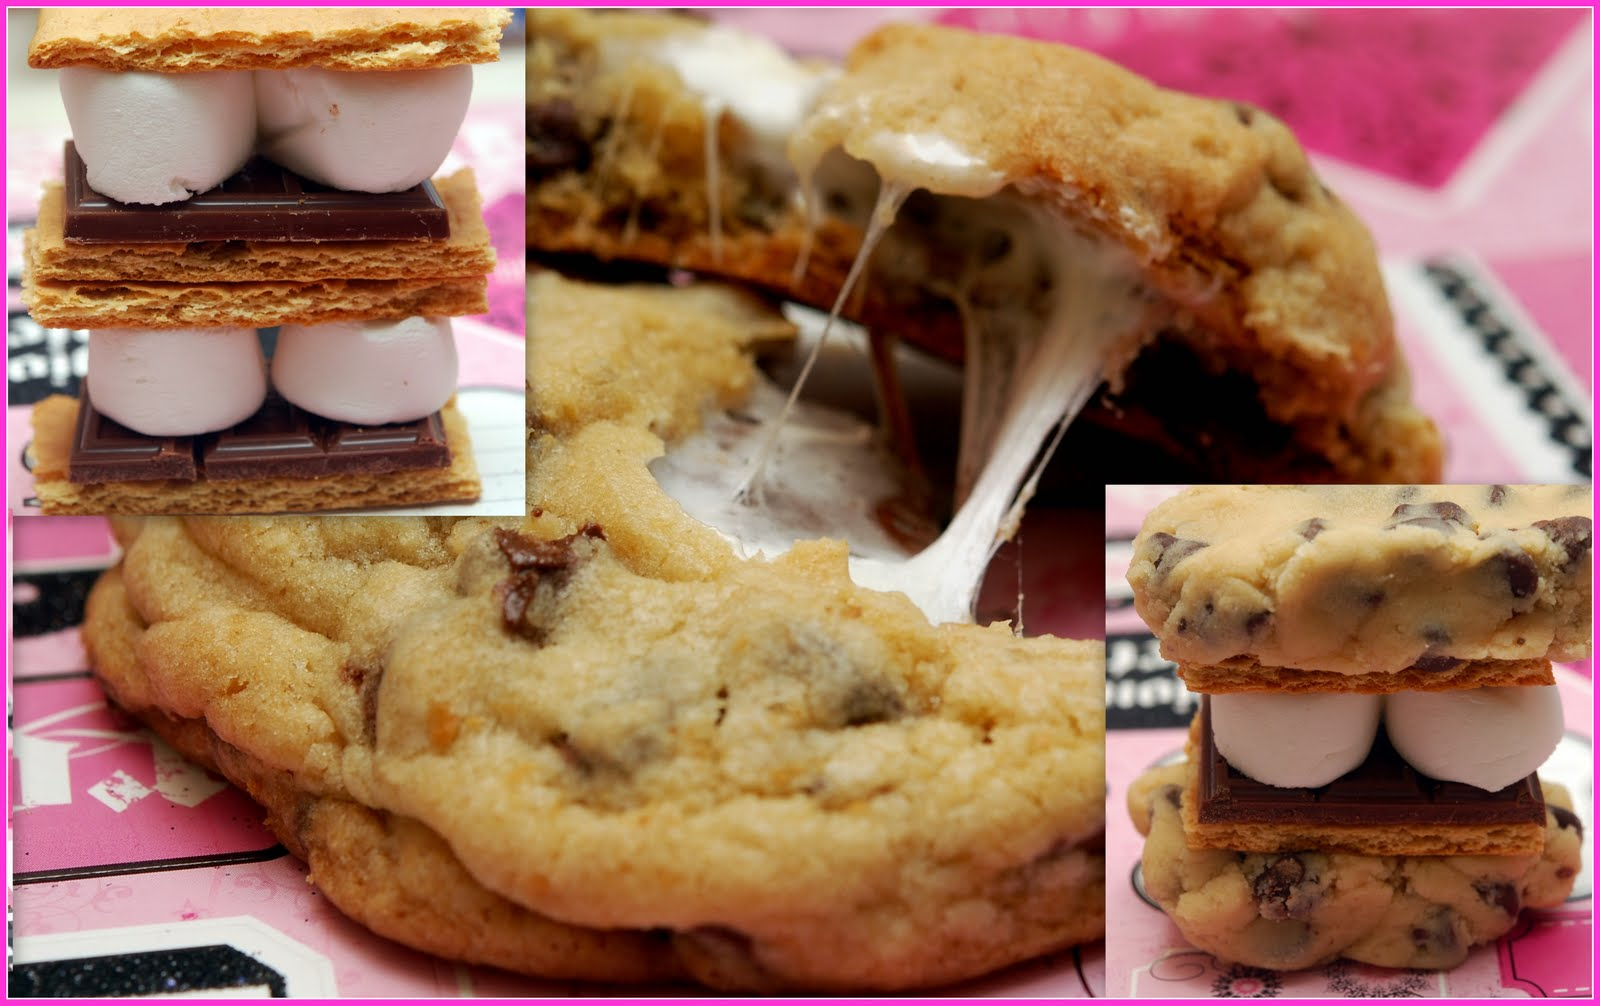 mores Stuffed Chocolate Chip Cookies